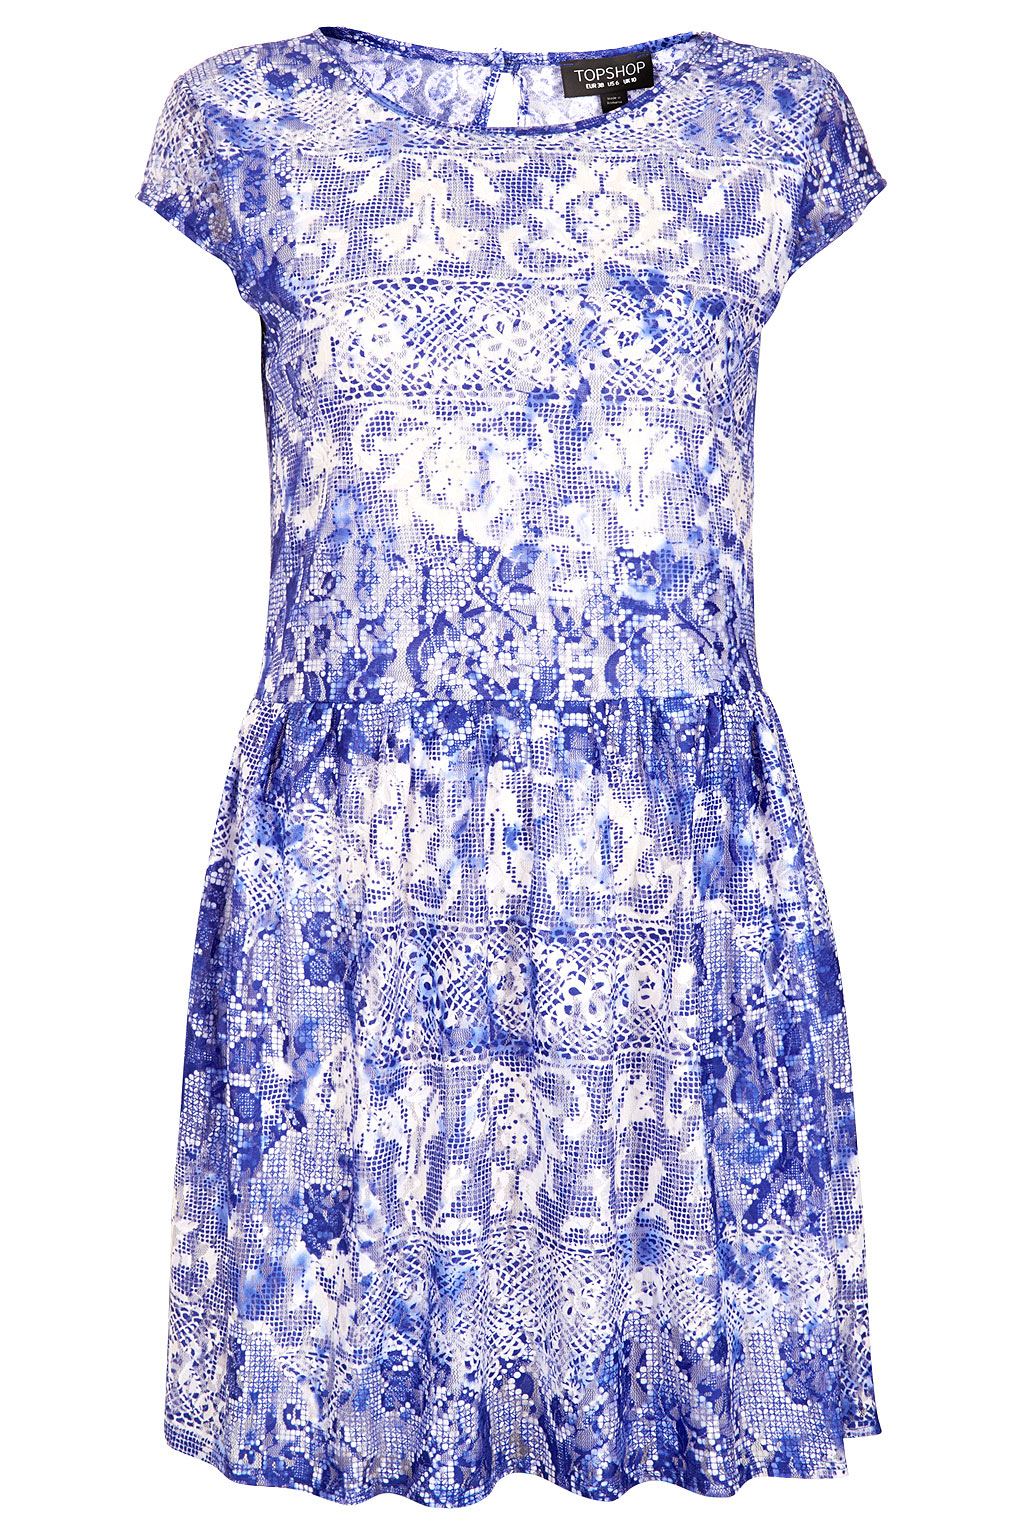 Topshop Capped Sleeve Lace Dress in Blue | Lyst